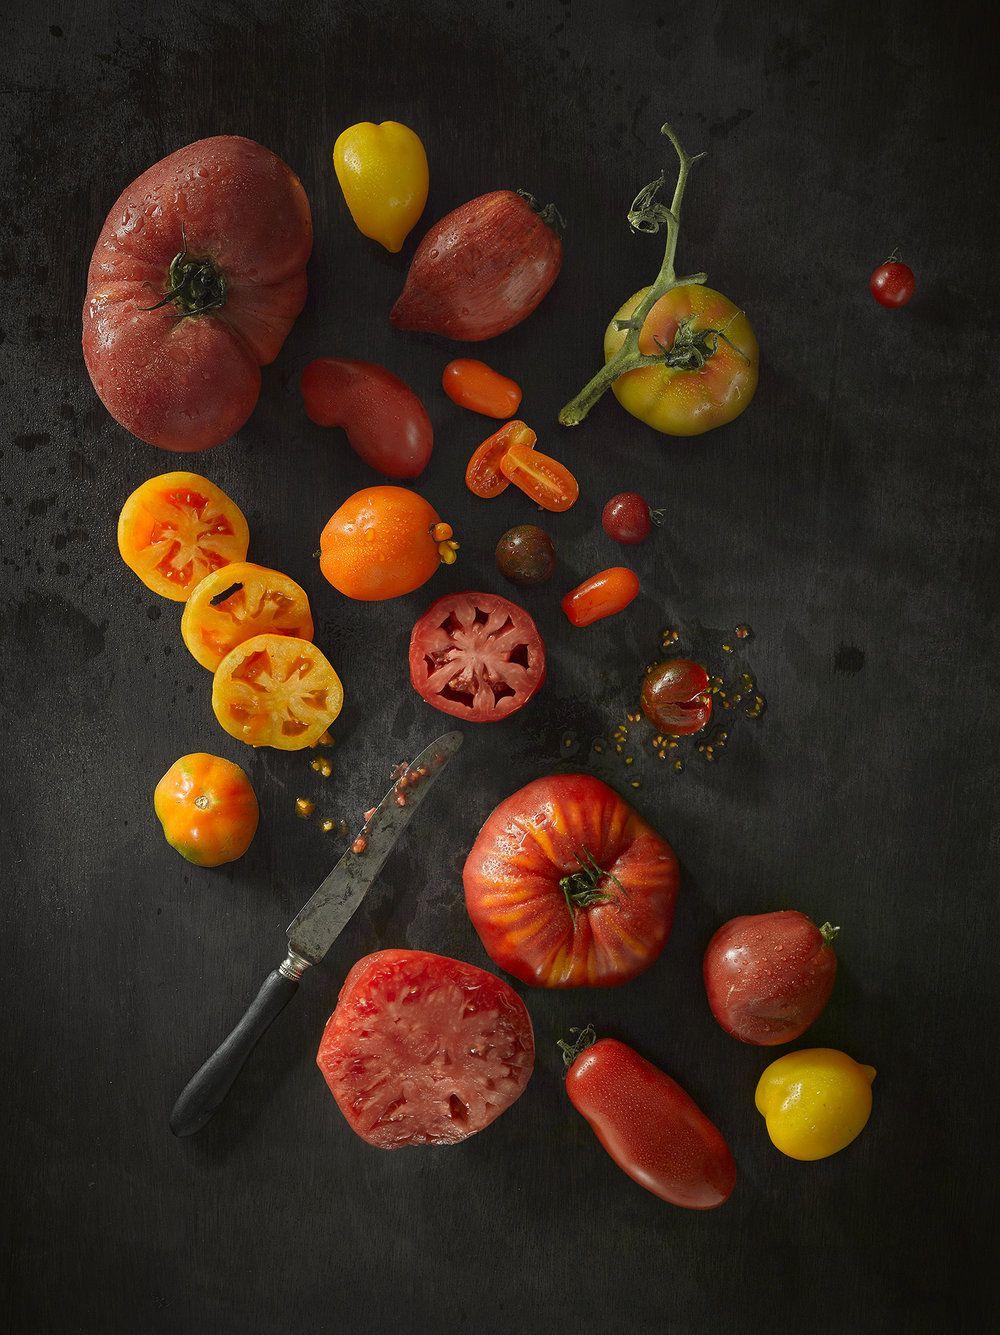 Food Photography Mixed Tomatoes Create This Still Life Food